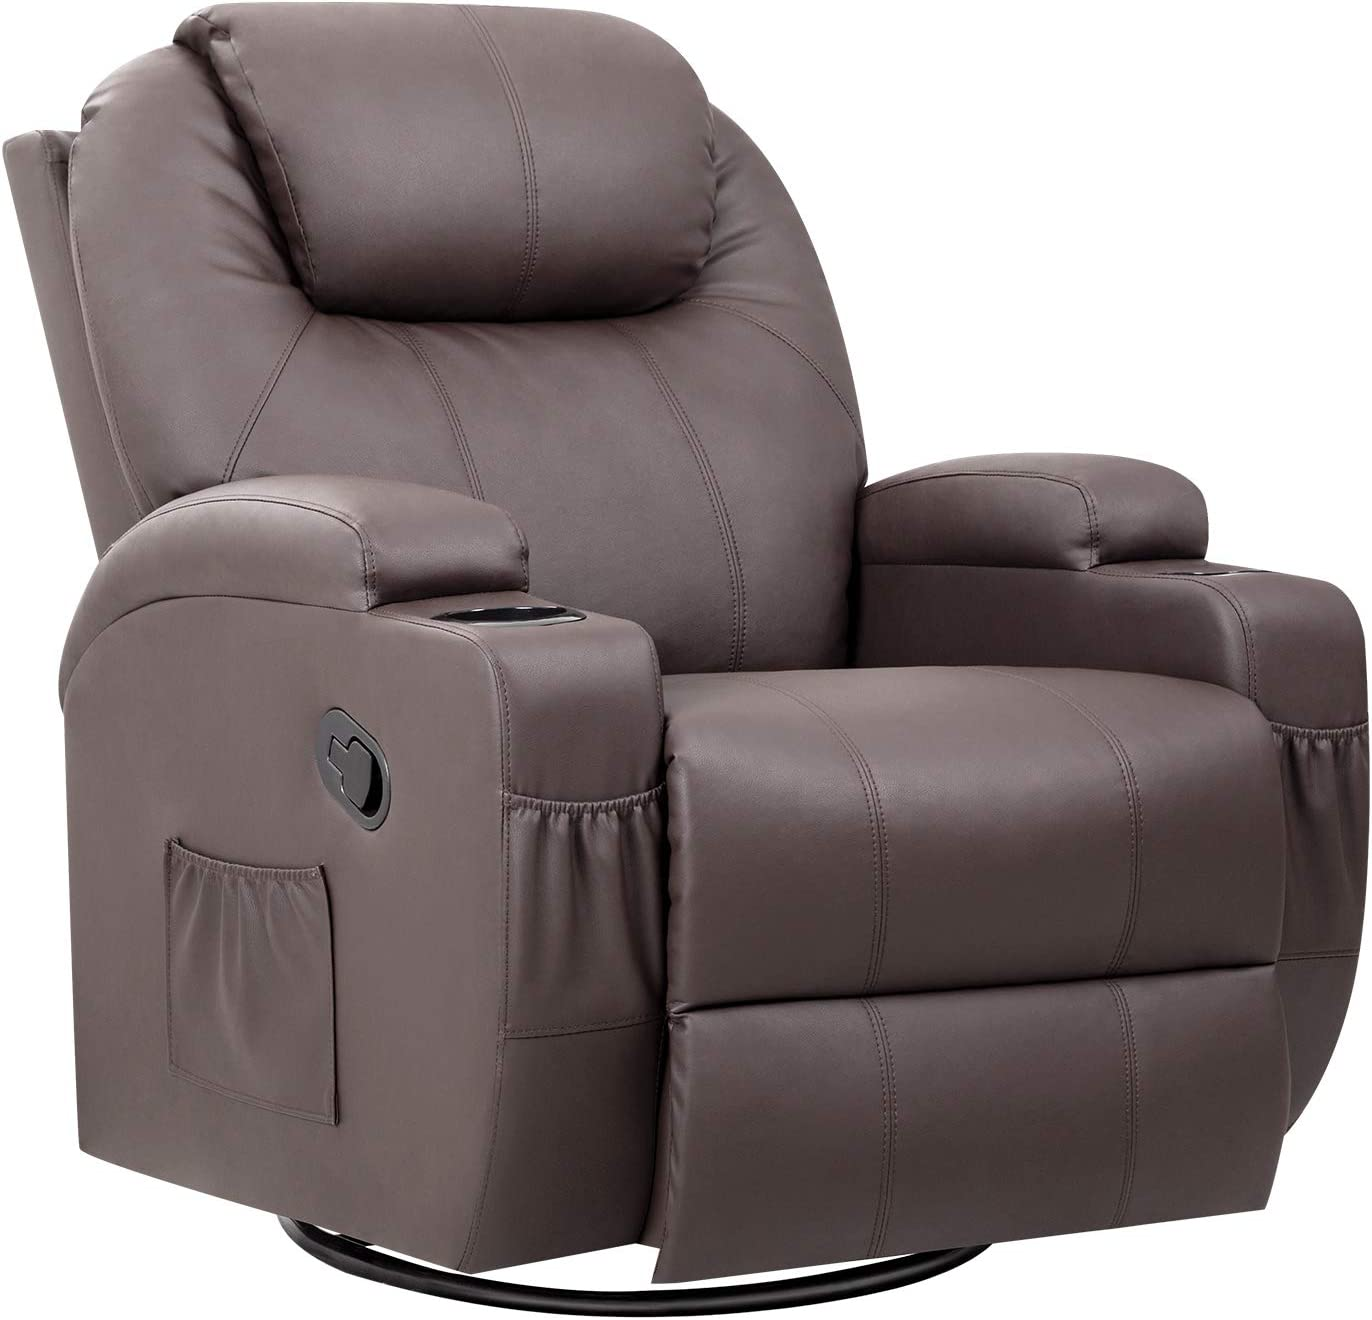 Pawnova PU Leather Chair with Massage Function, Adjustable Home Theater Single Recliner Thick Seat and Backrest, 360°Swivel and Rocking Sofa for Living Room, Brown